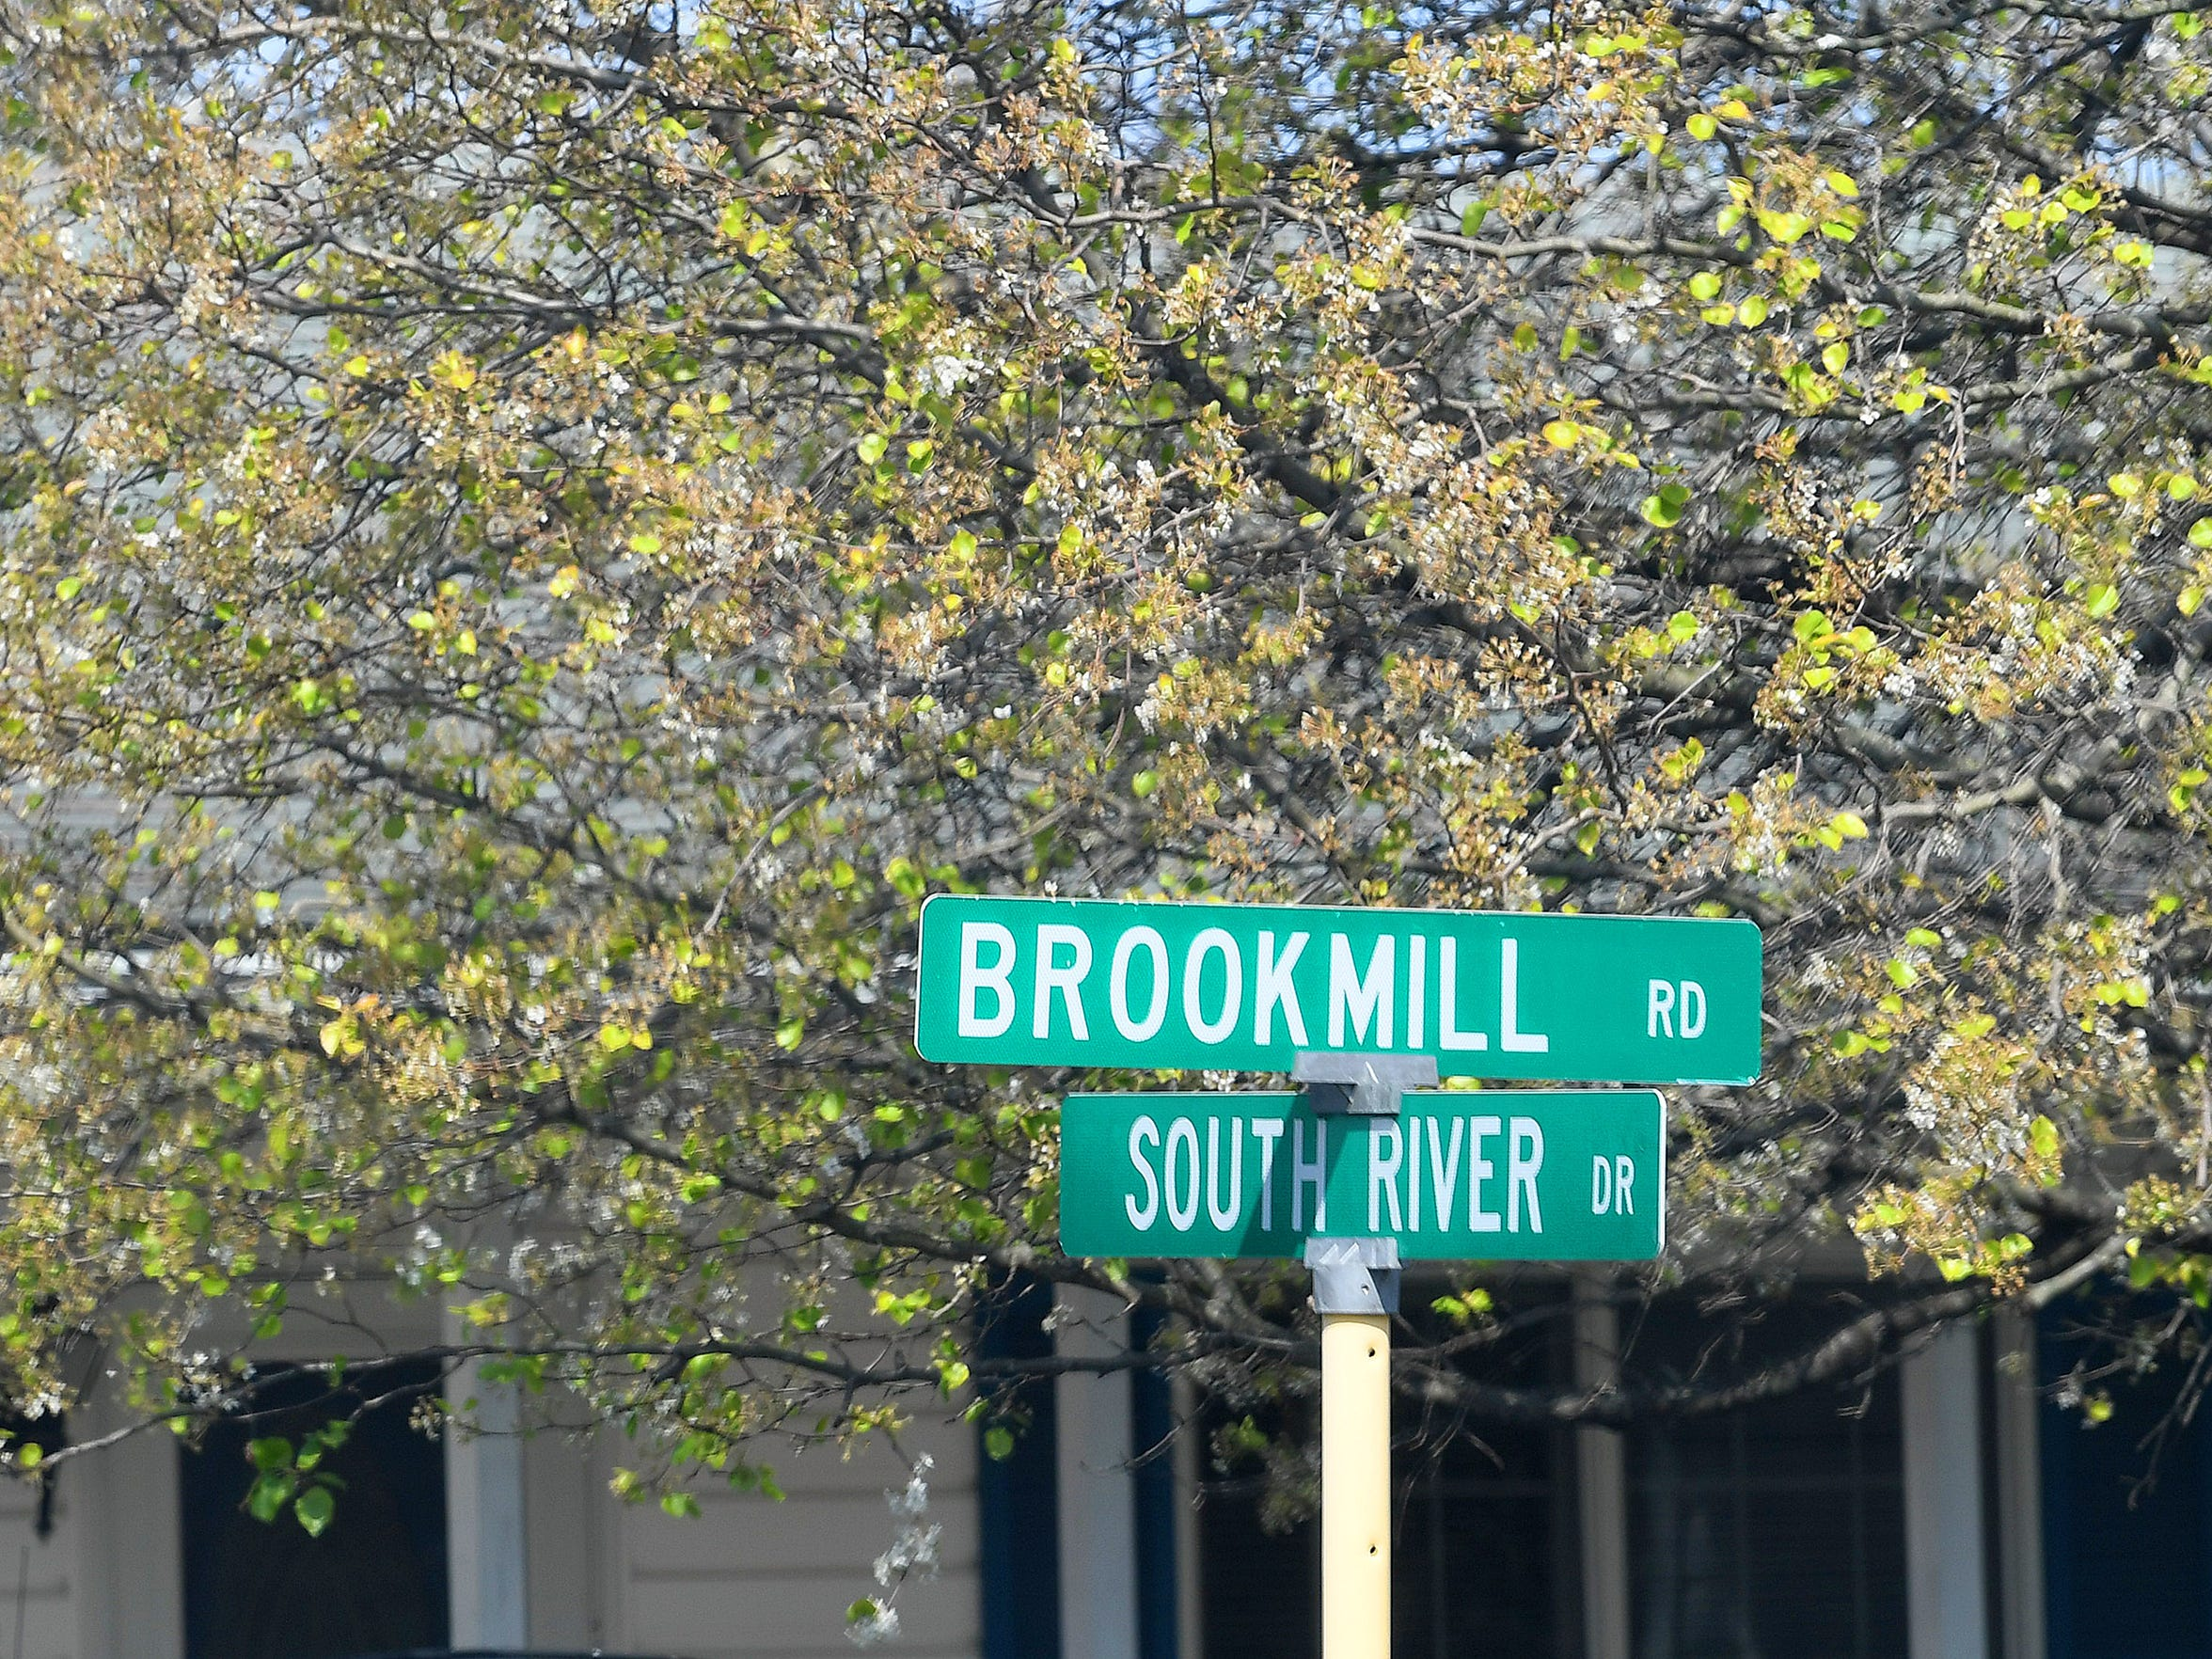 Street signs mark the intersection of Brookmill road